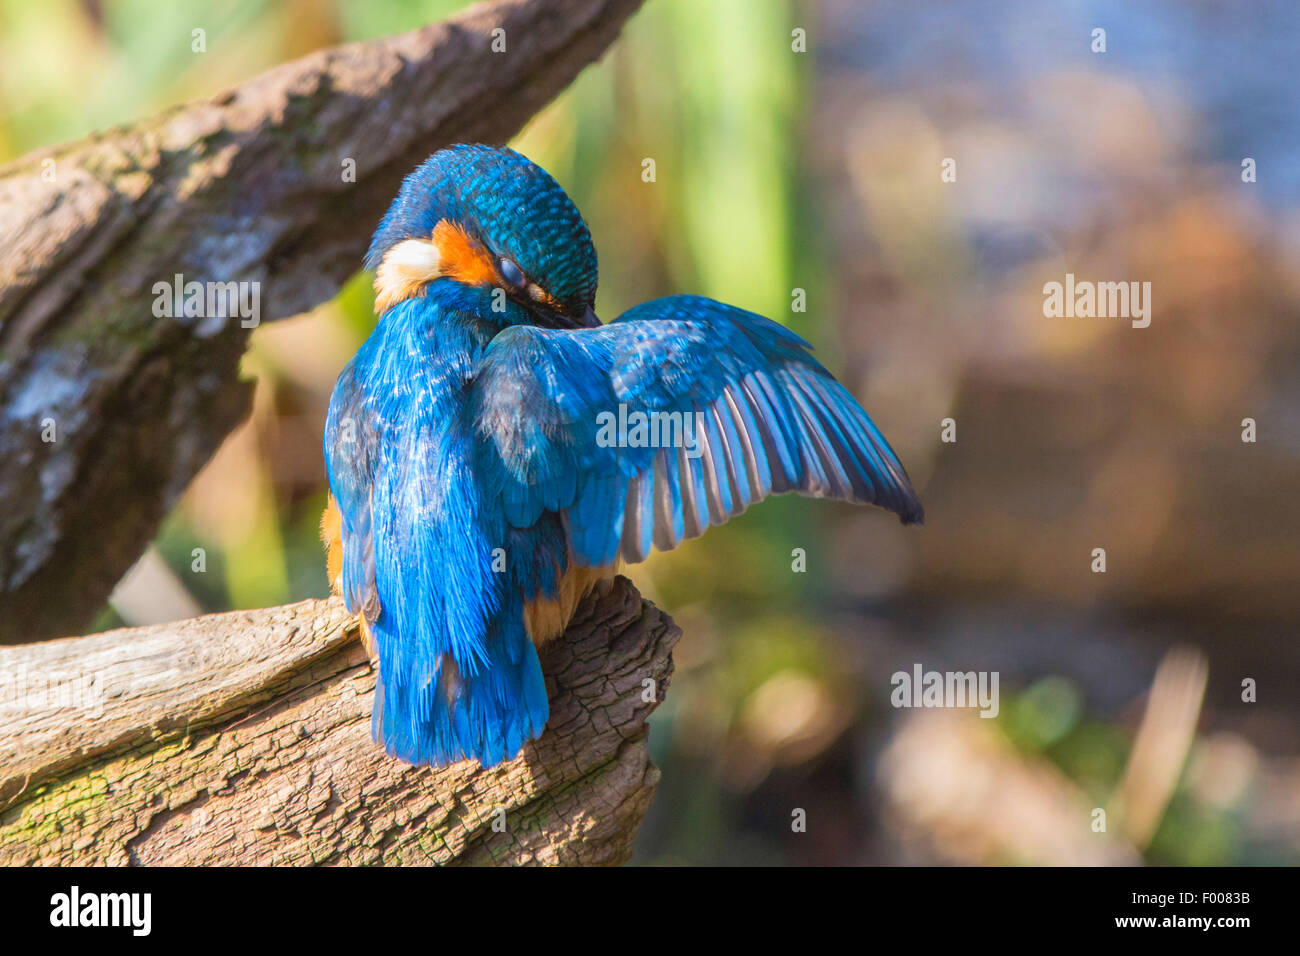 river kingfisher (Alcedo atthis), caring of the plumage, Germany, Bavaria, Isental - Stock Image